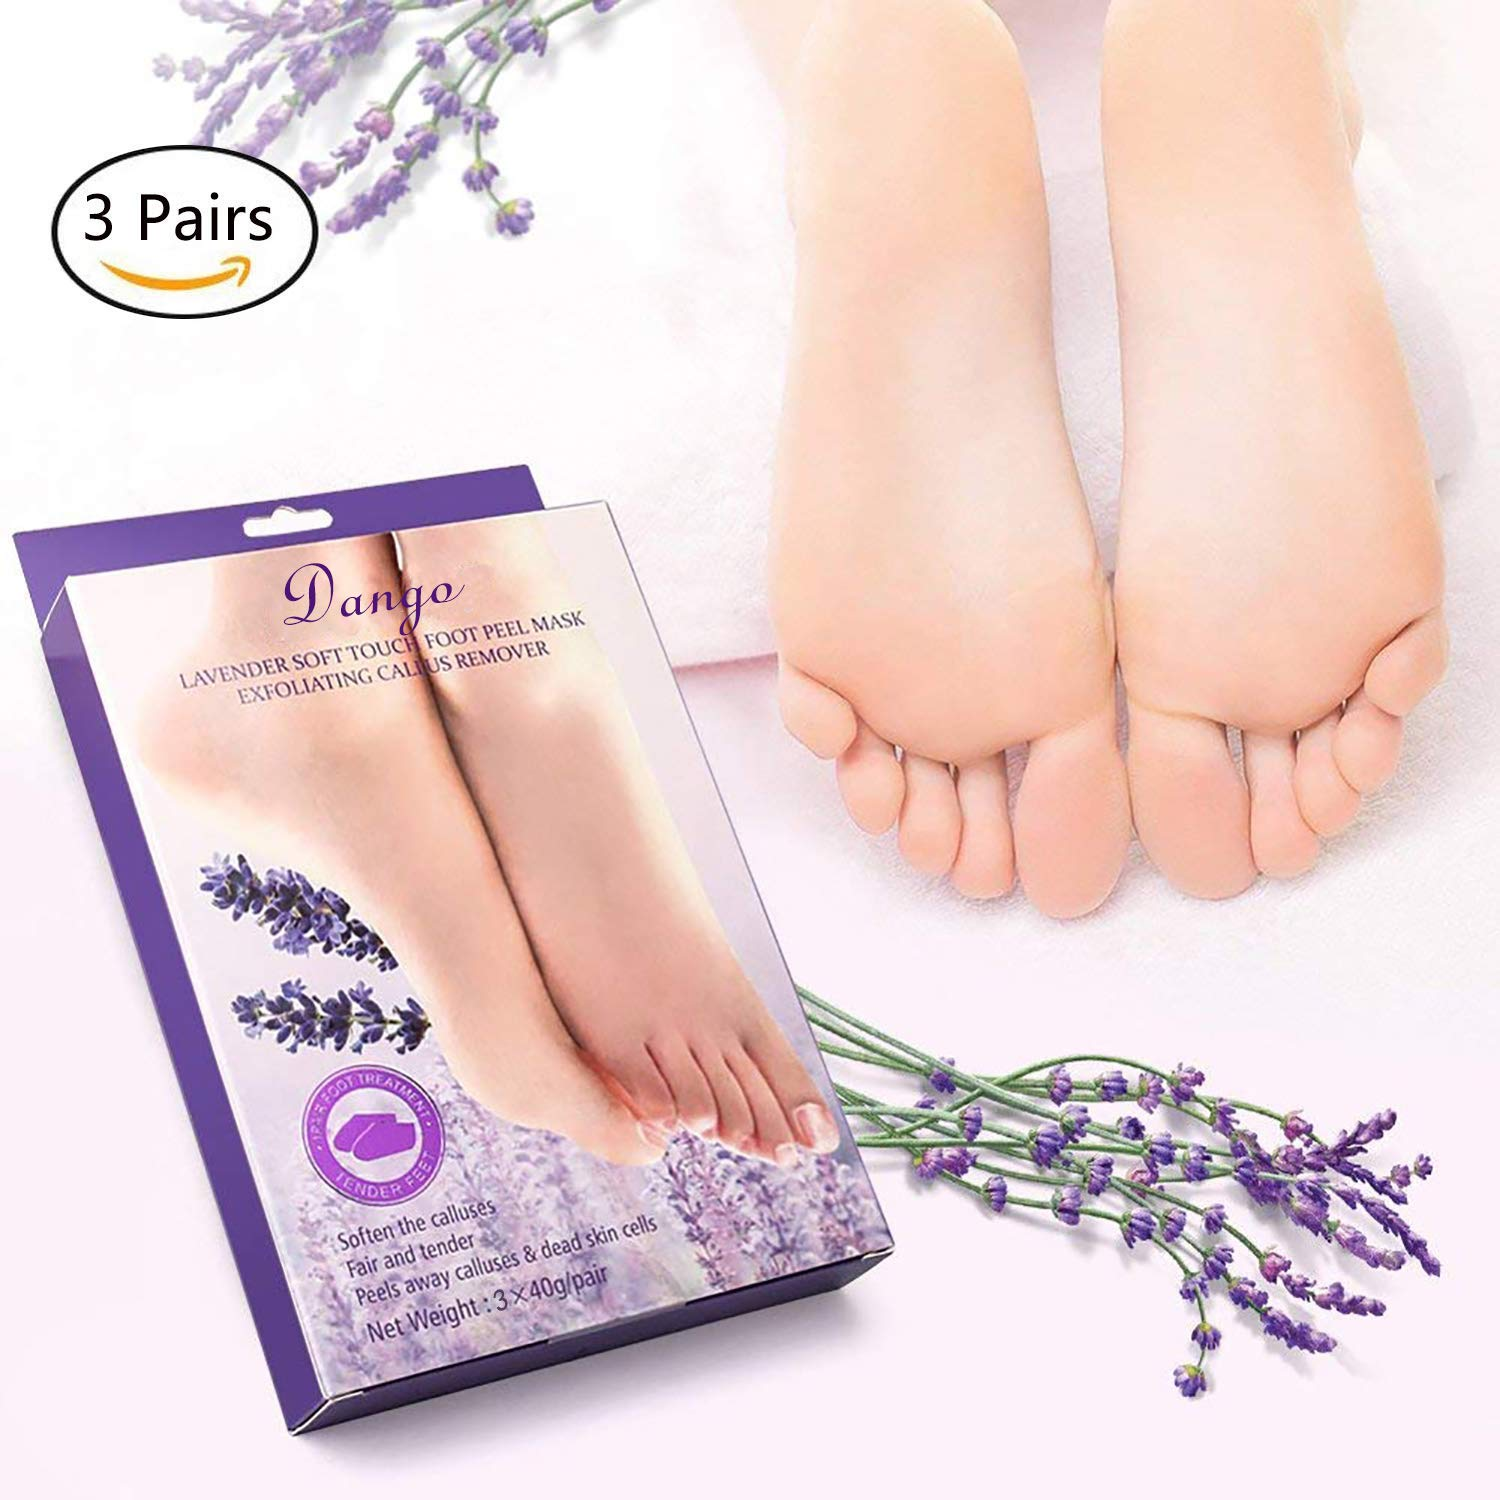 3 Pairs Foot Peel Mask for Soft Feet Baby Foot Peeling Mask Exfoliating Booties for Peeling Off Calluses & Dead Skin, Treatment With Natural Lavender Dango